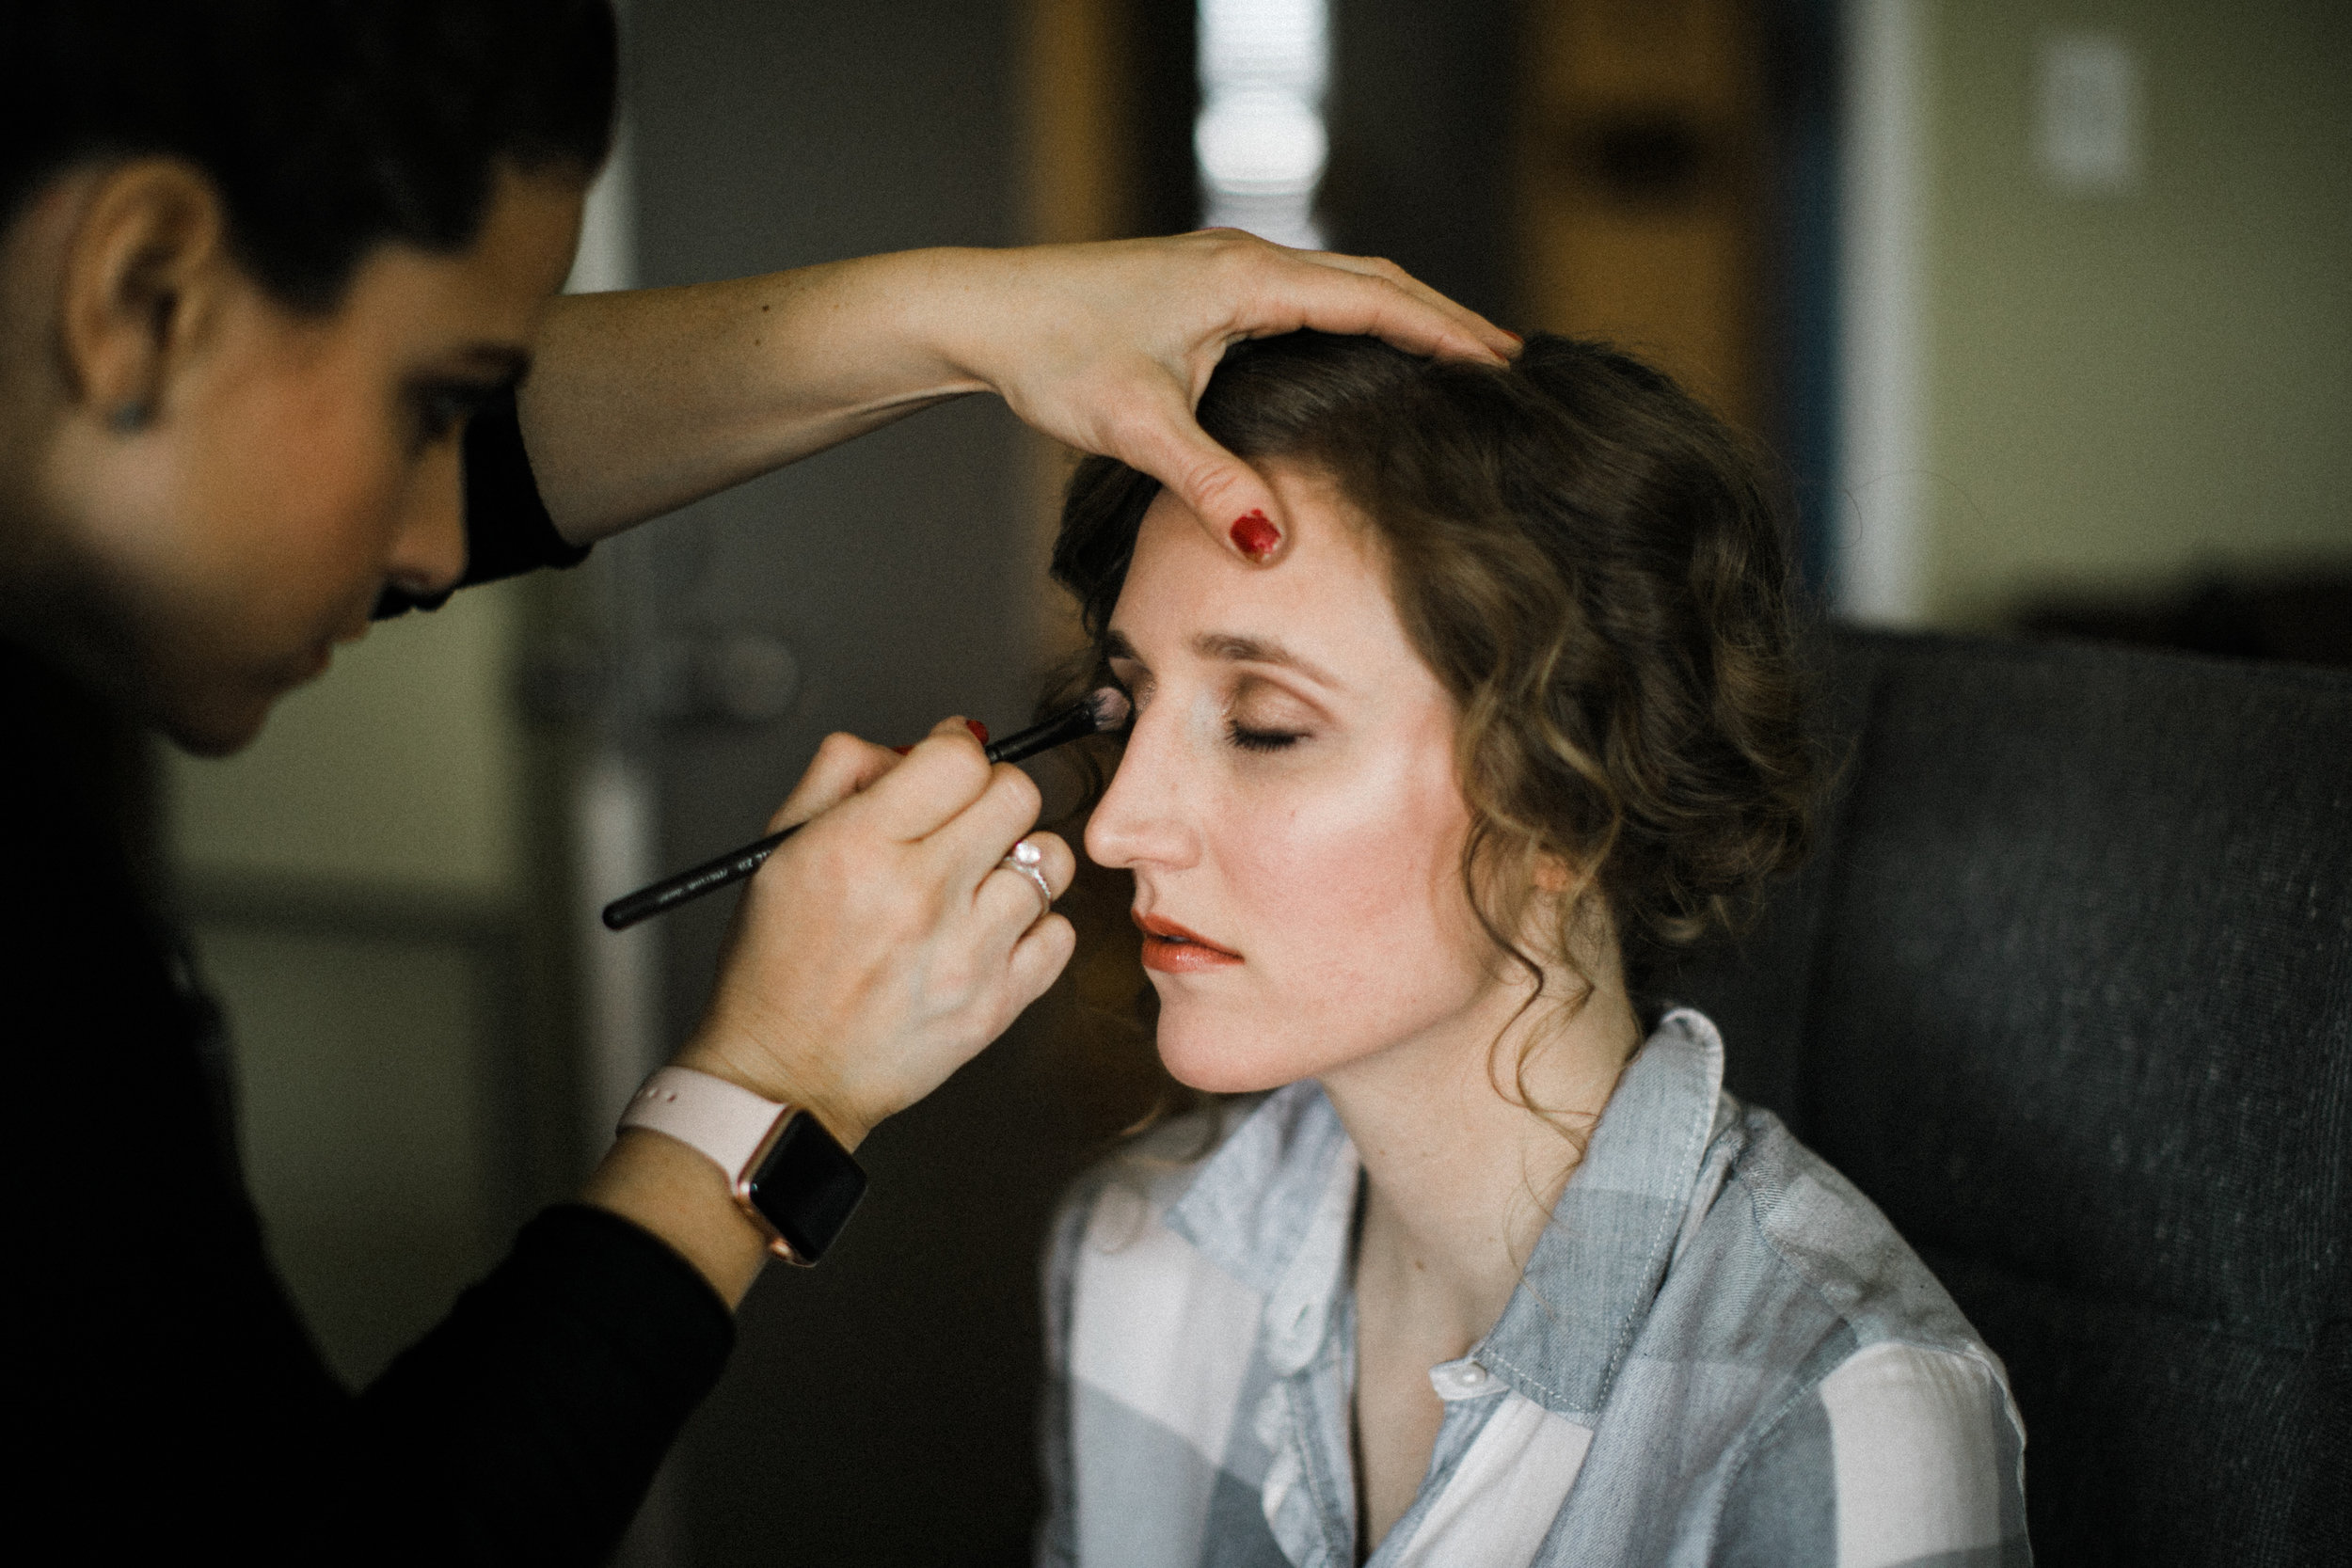 My Favorite Wedding Cast.Makeup For Wedding Photography 5 Tips To Look Your Best Emma Dallman